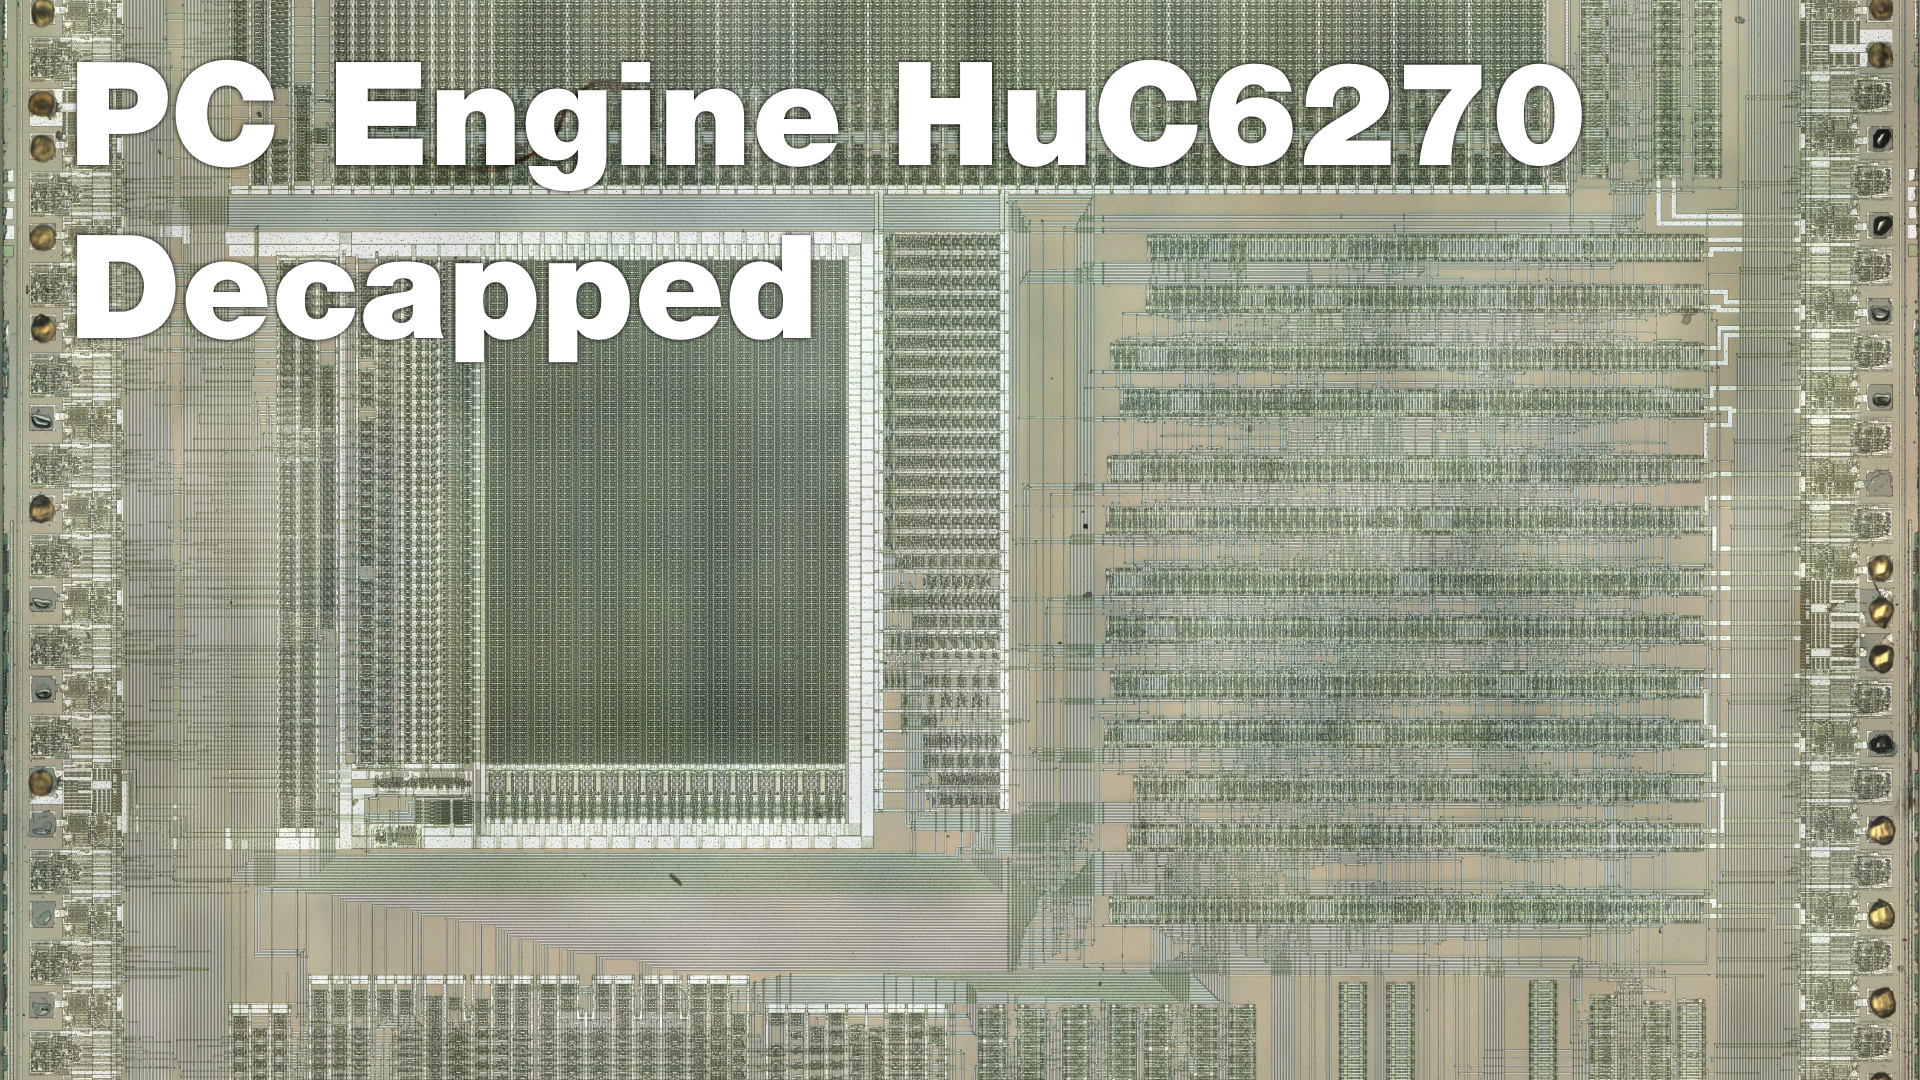 Furrtek Maps the PC Engine HuC6270 with John McMaster